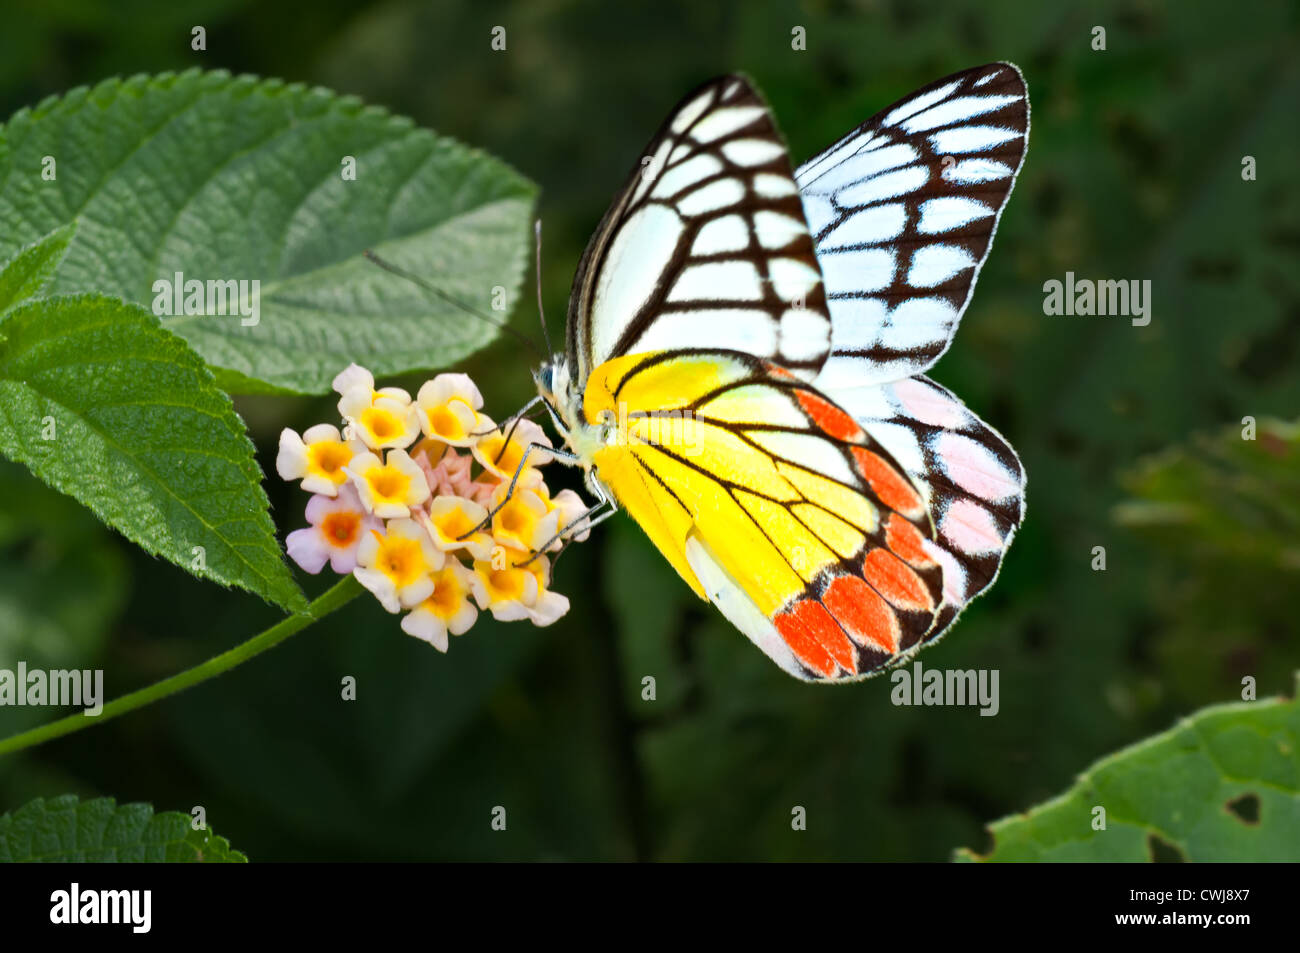 Butterfly, Common Jezebel, Delias eucharis, sucking honey from flower, pollinate, close up, copy space - Stock Image